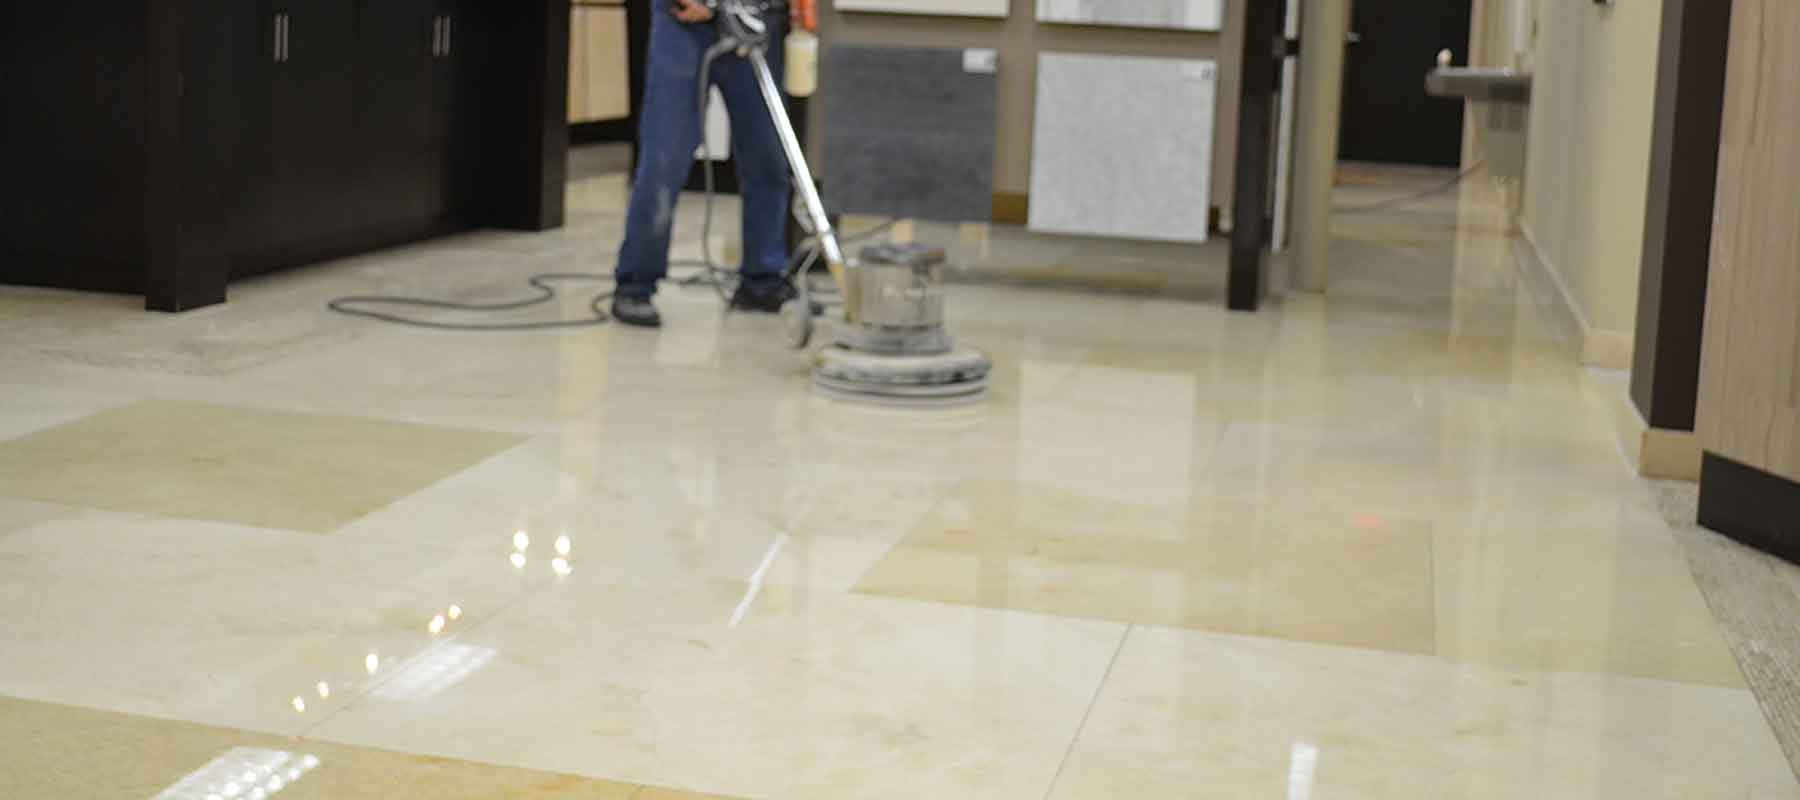 Jj Floor Care Marble Restoration Amp Polishing Jacksonville